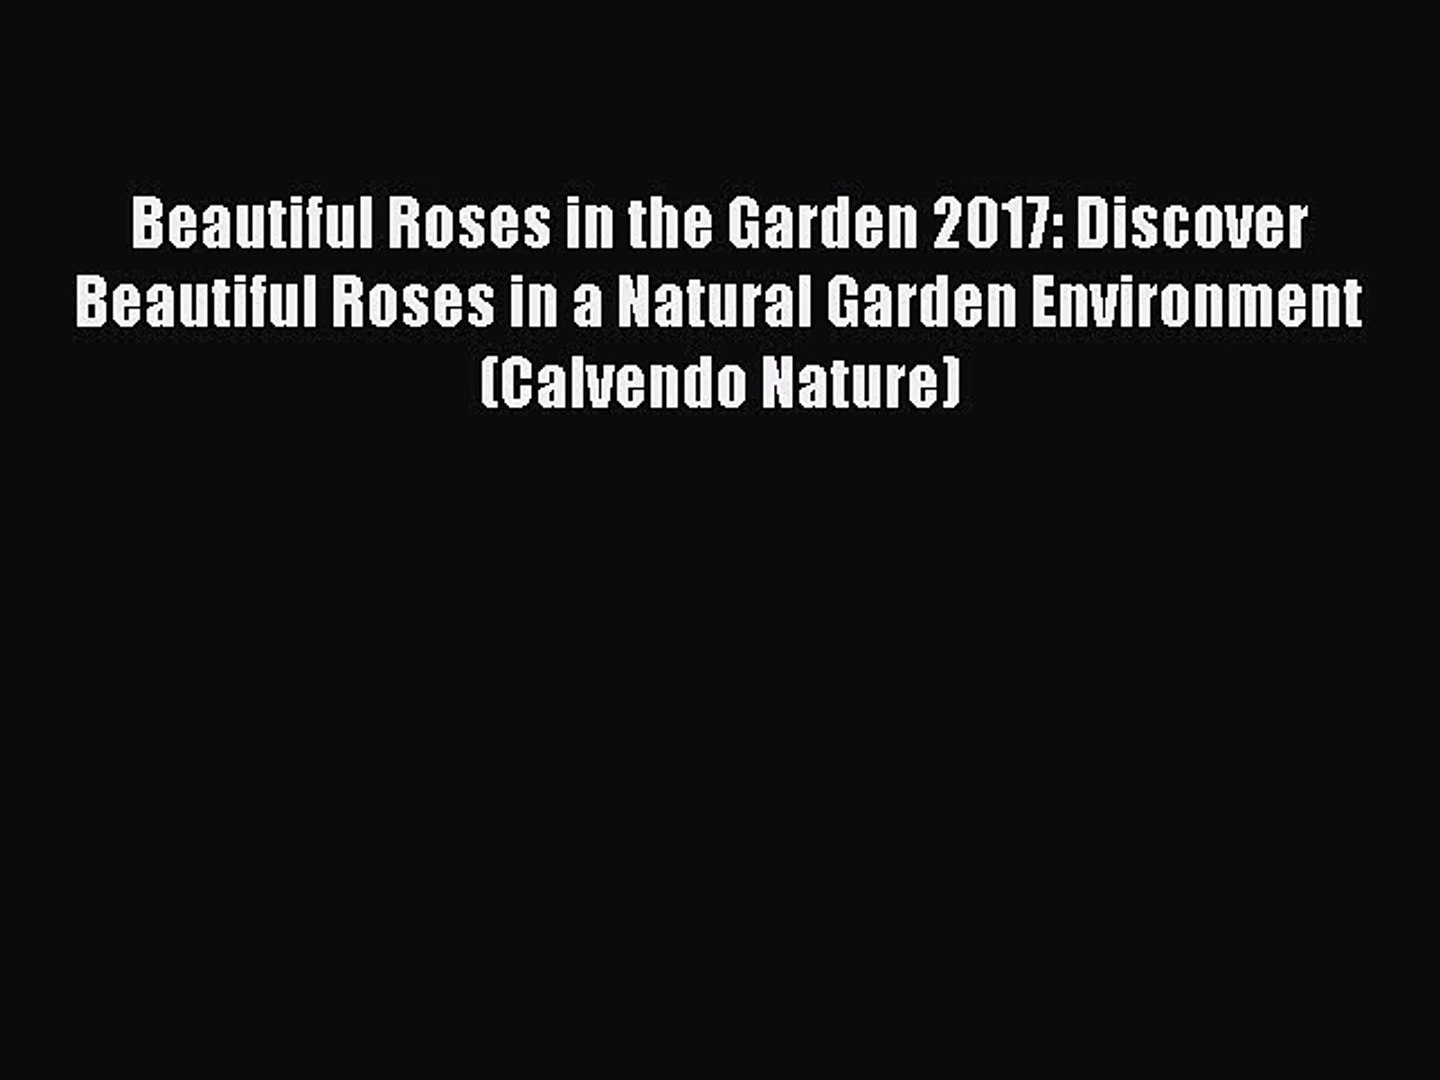 Read Beautiful Roses in the Garden 2017: Discover Beautiful Roses in a Natural Garden Environment